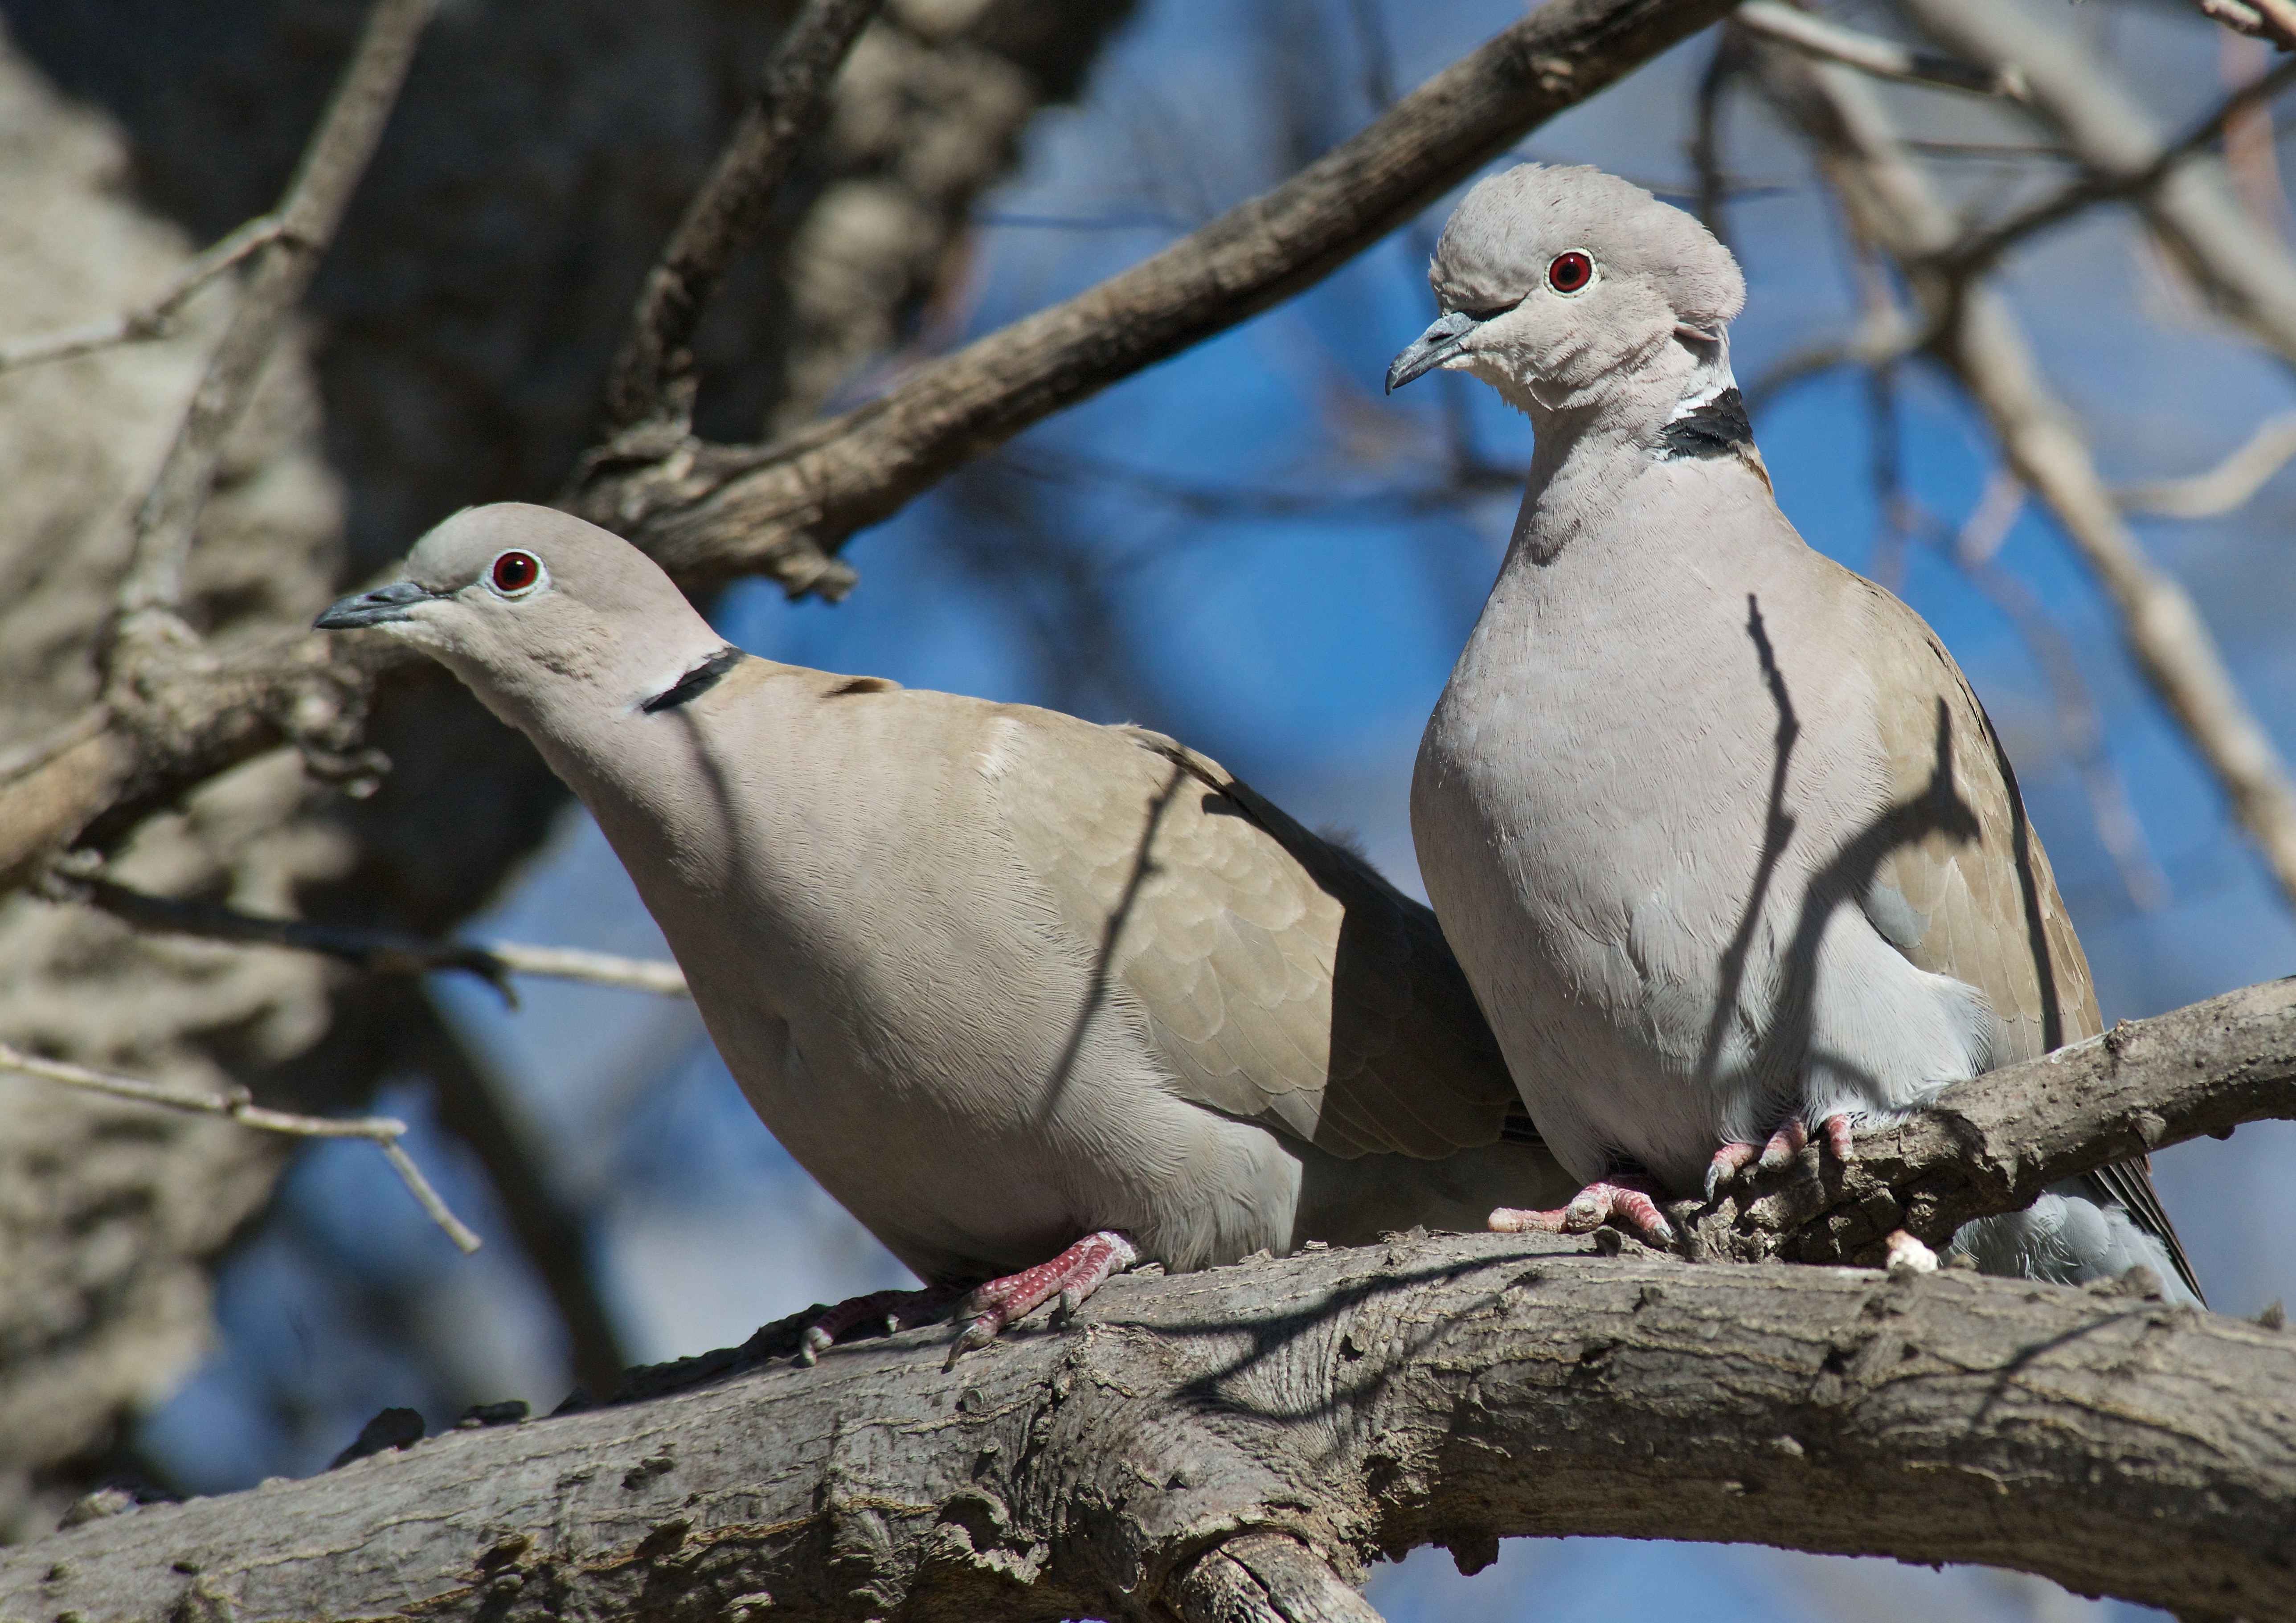 Asian Collared Doves